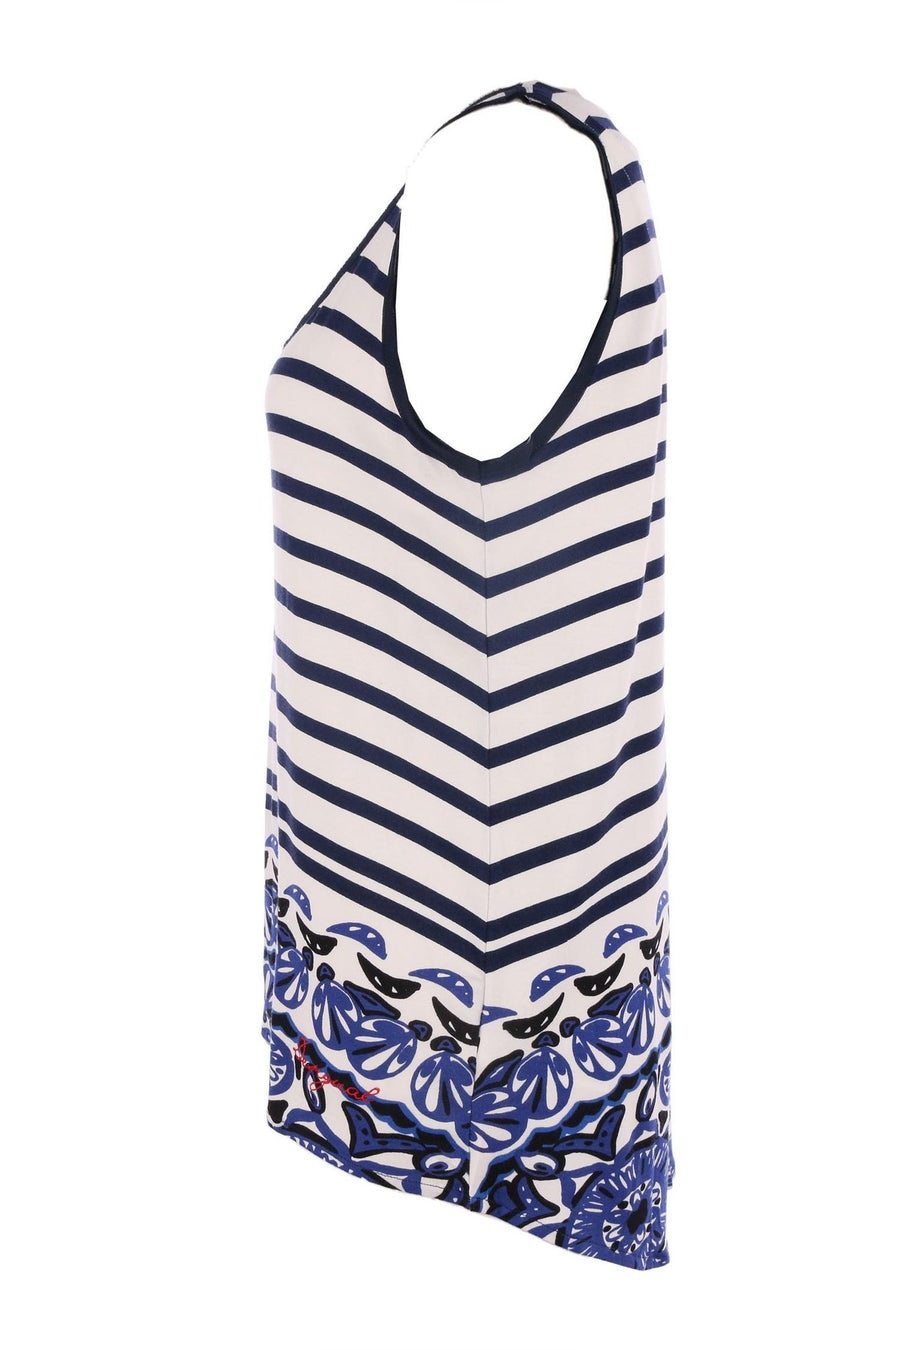 sleeveless-drop-hem-tank-by-desigual